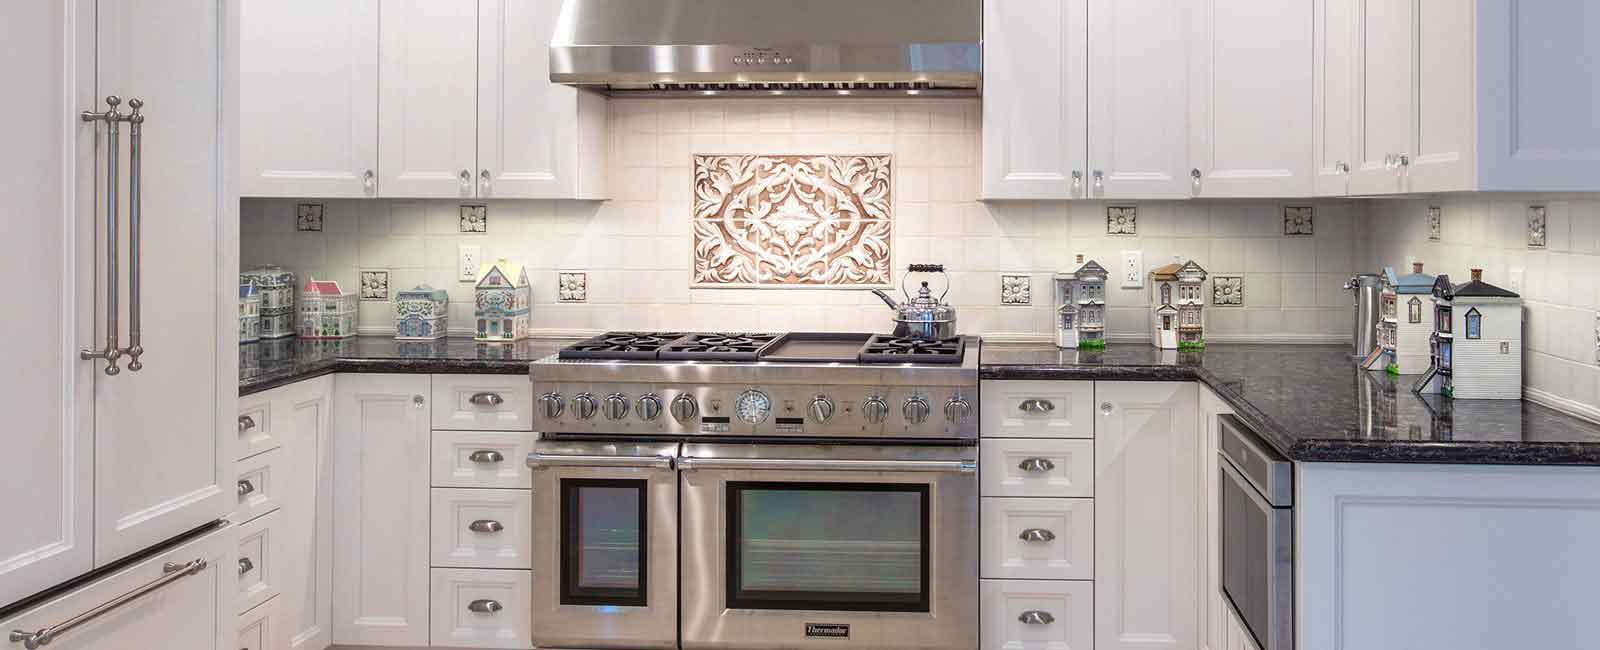 Residential Custom Kitchen Cabinets In Santa Monica CA